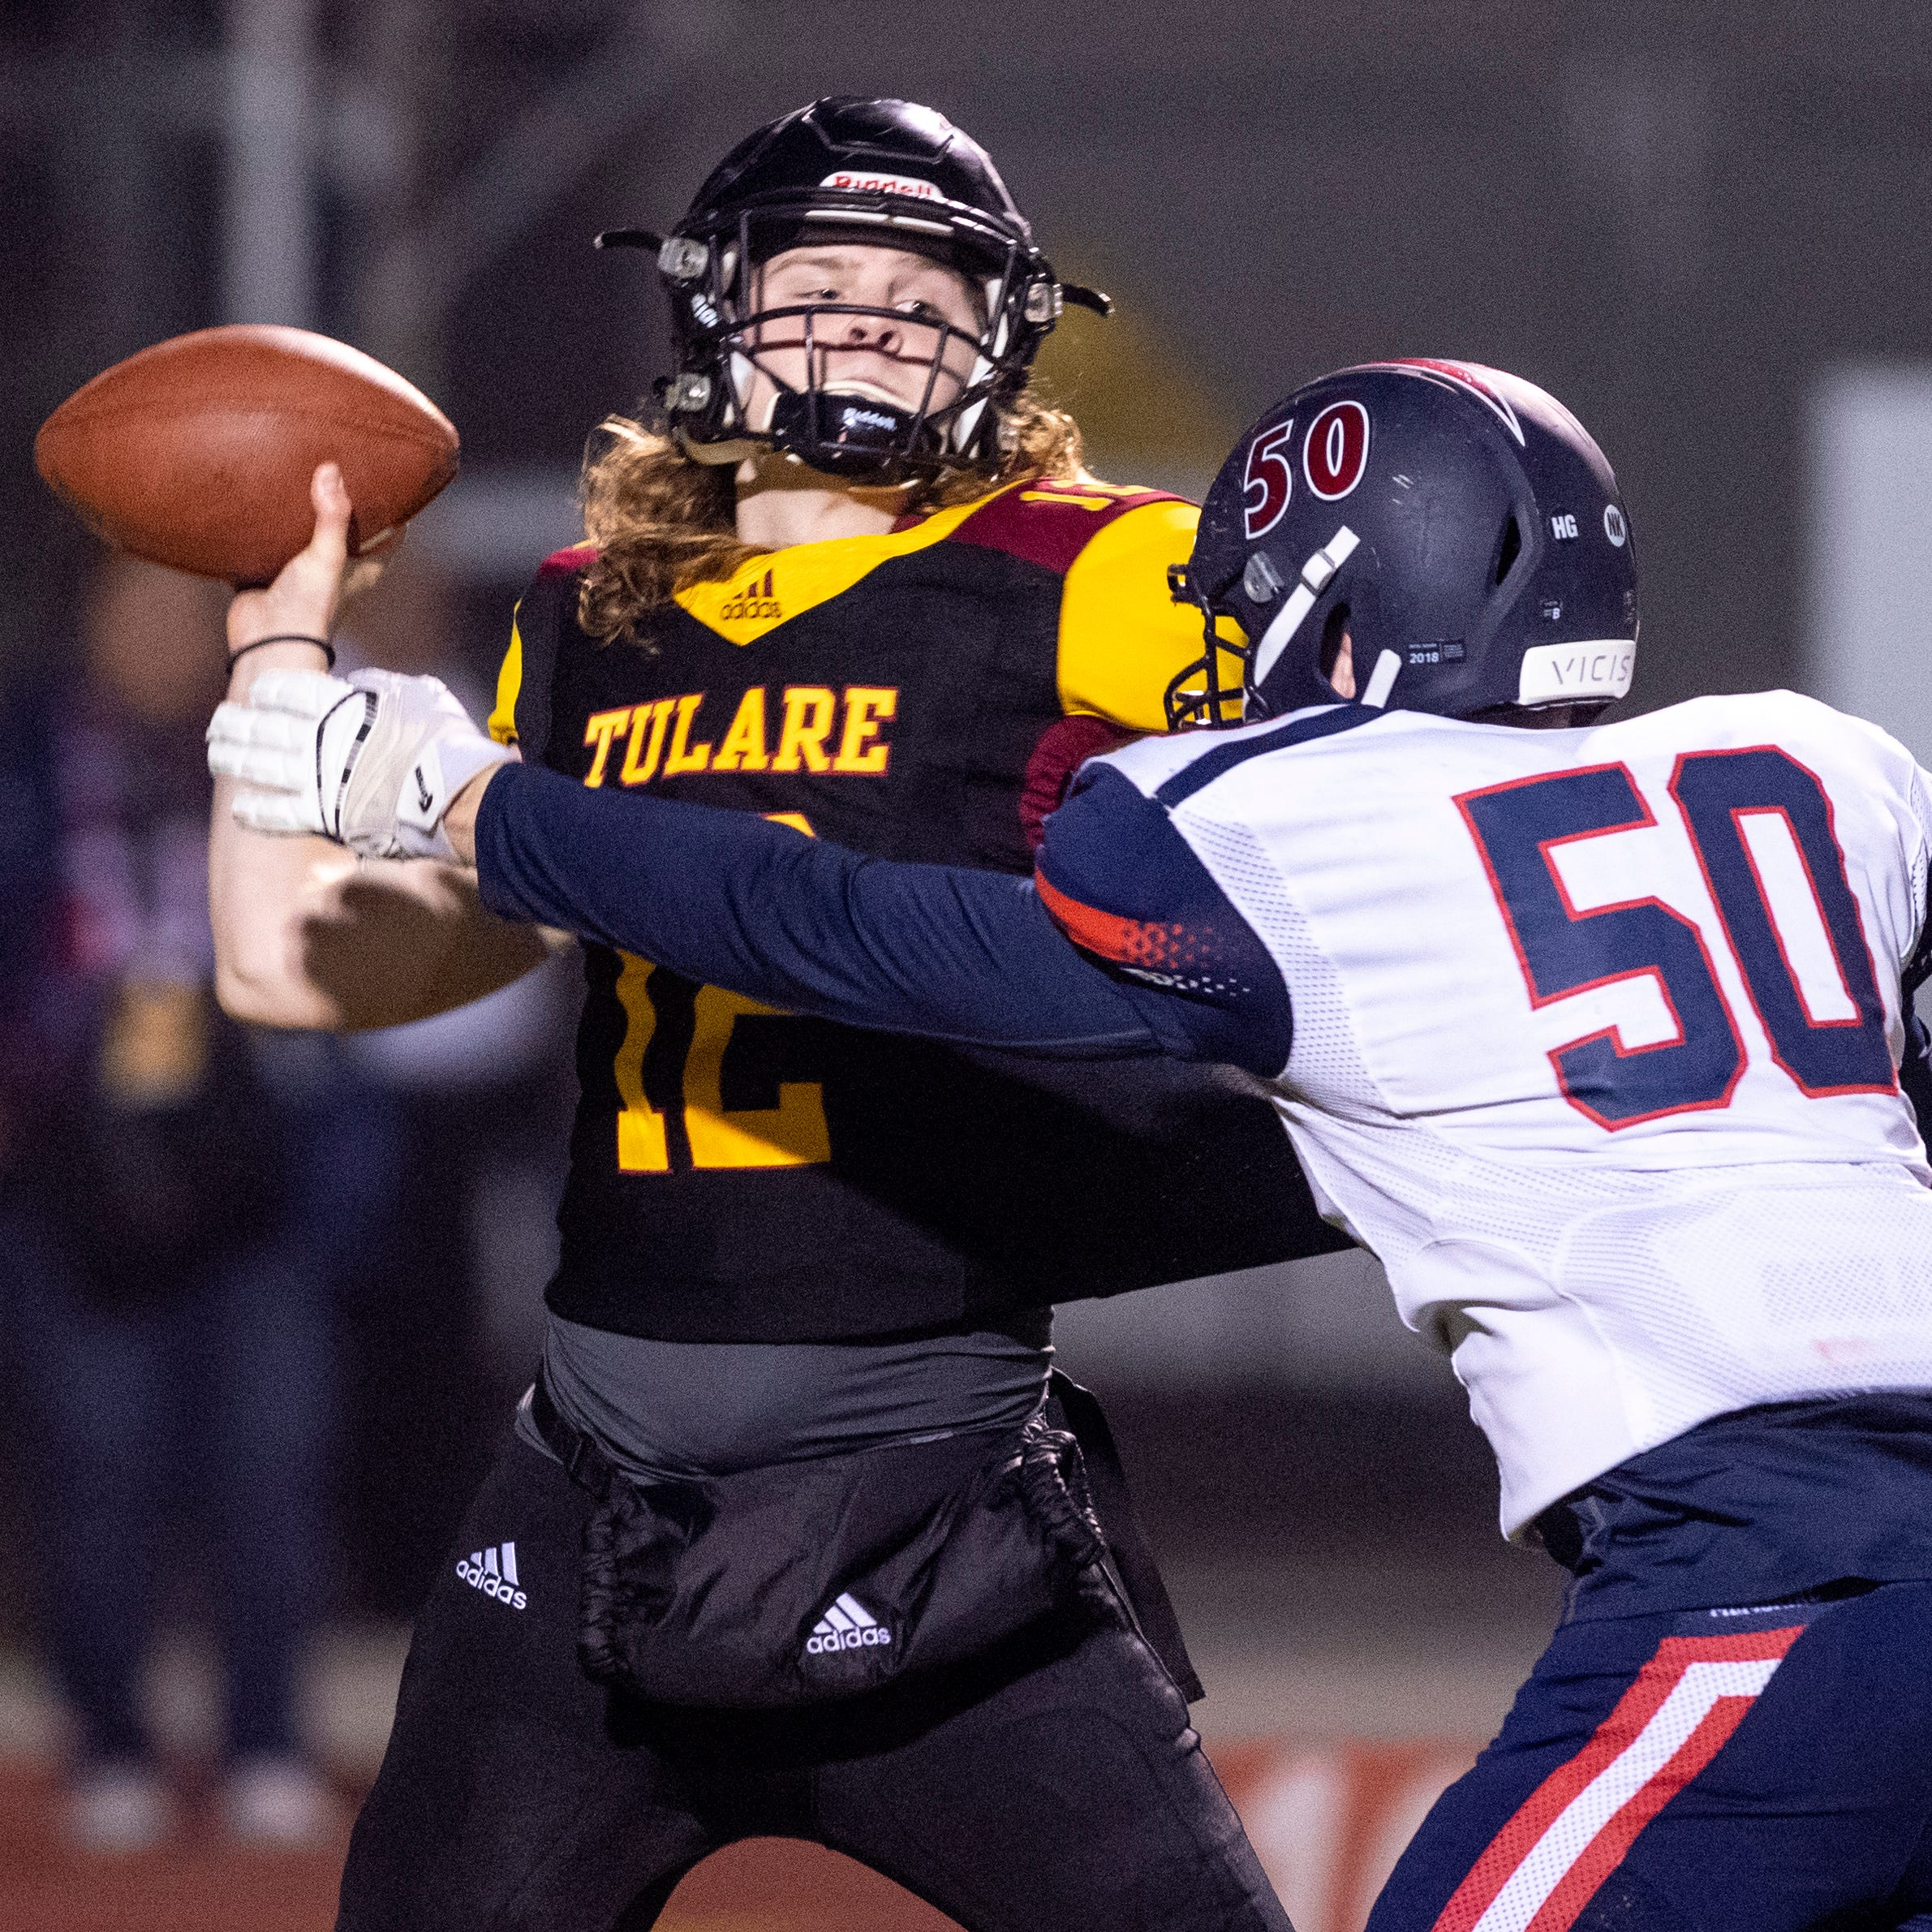 Where will this Tulare Union QB play in college?